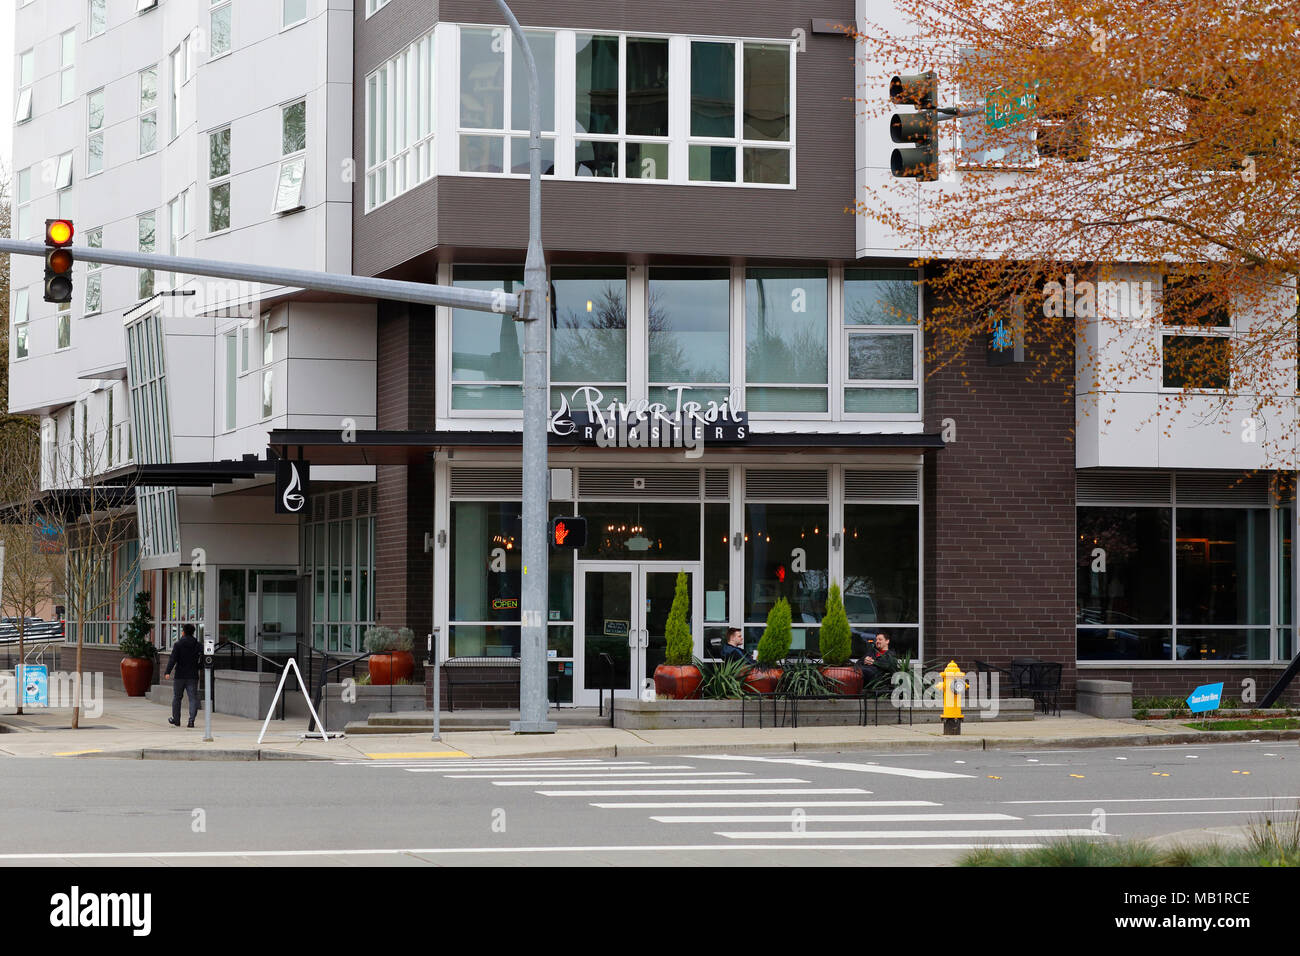 River Trail Roasters, 8397 158th Ave NE, Redmond, WA - Stock Image